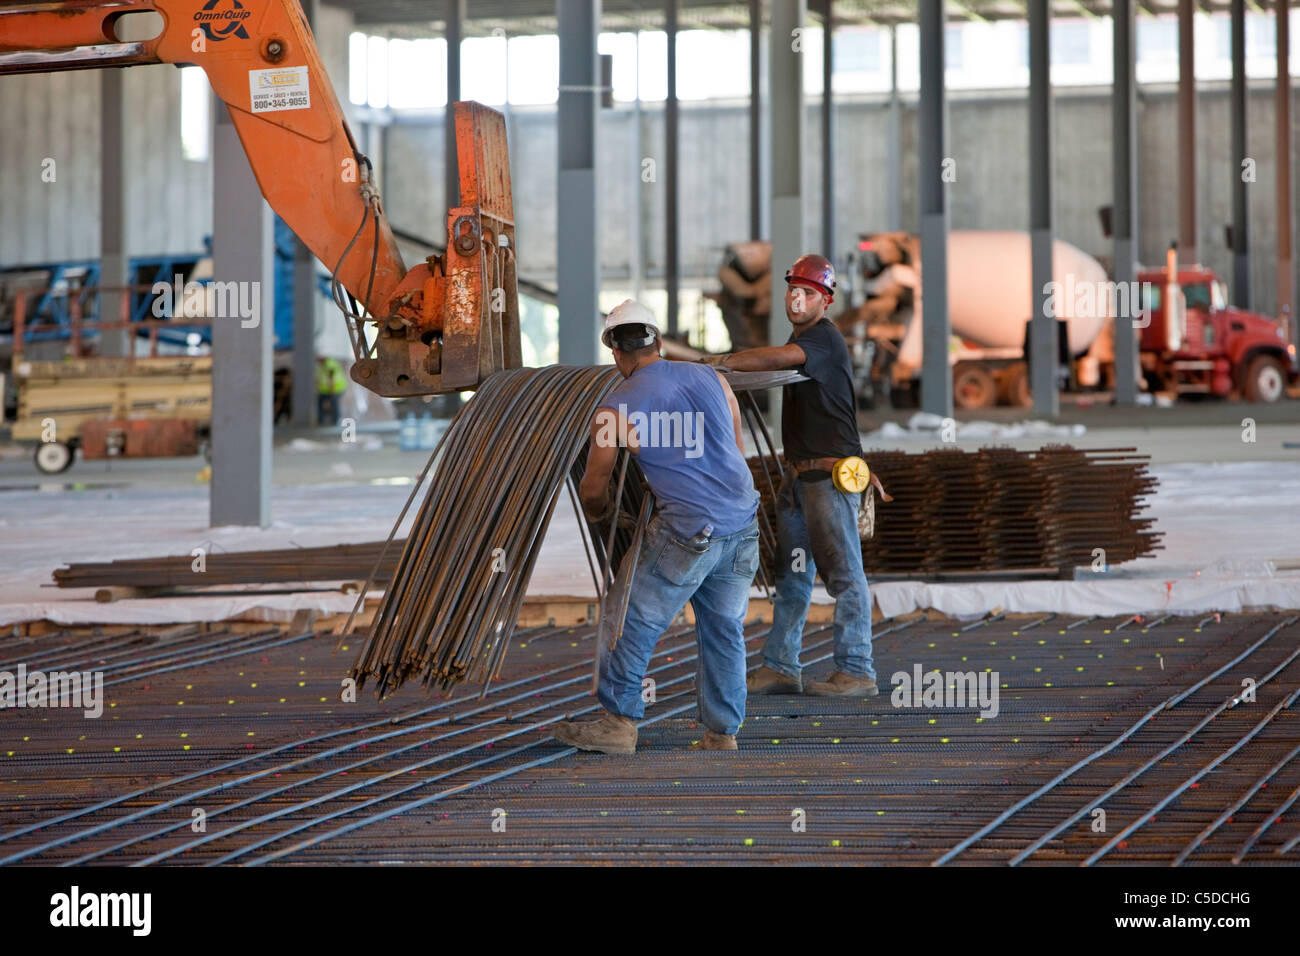 laying rebar for concrete reinforcement stock image